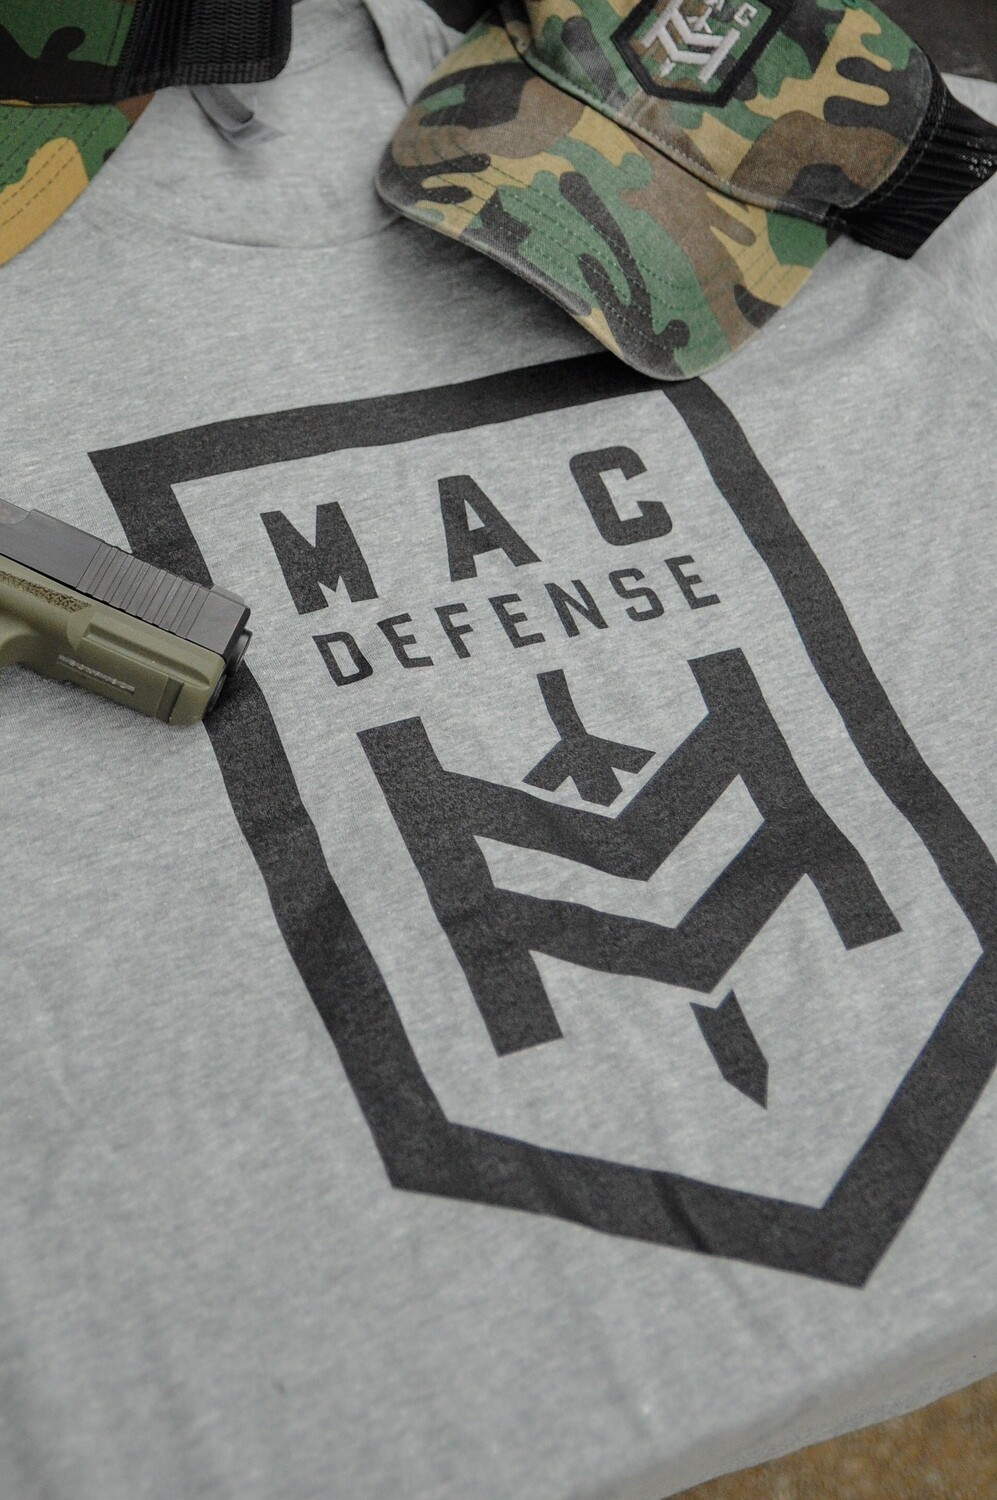 MAC DEF Shield Tee